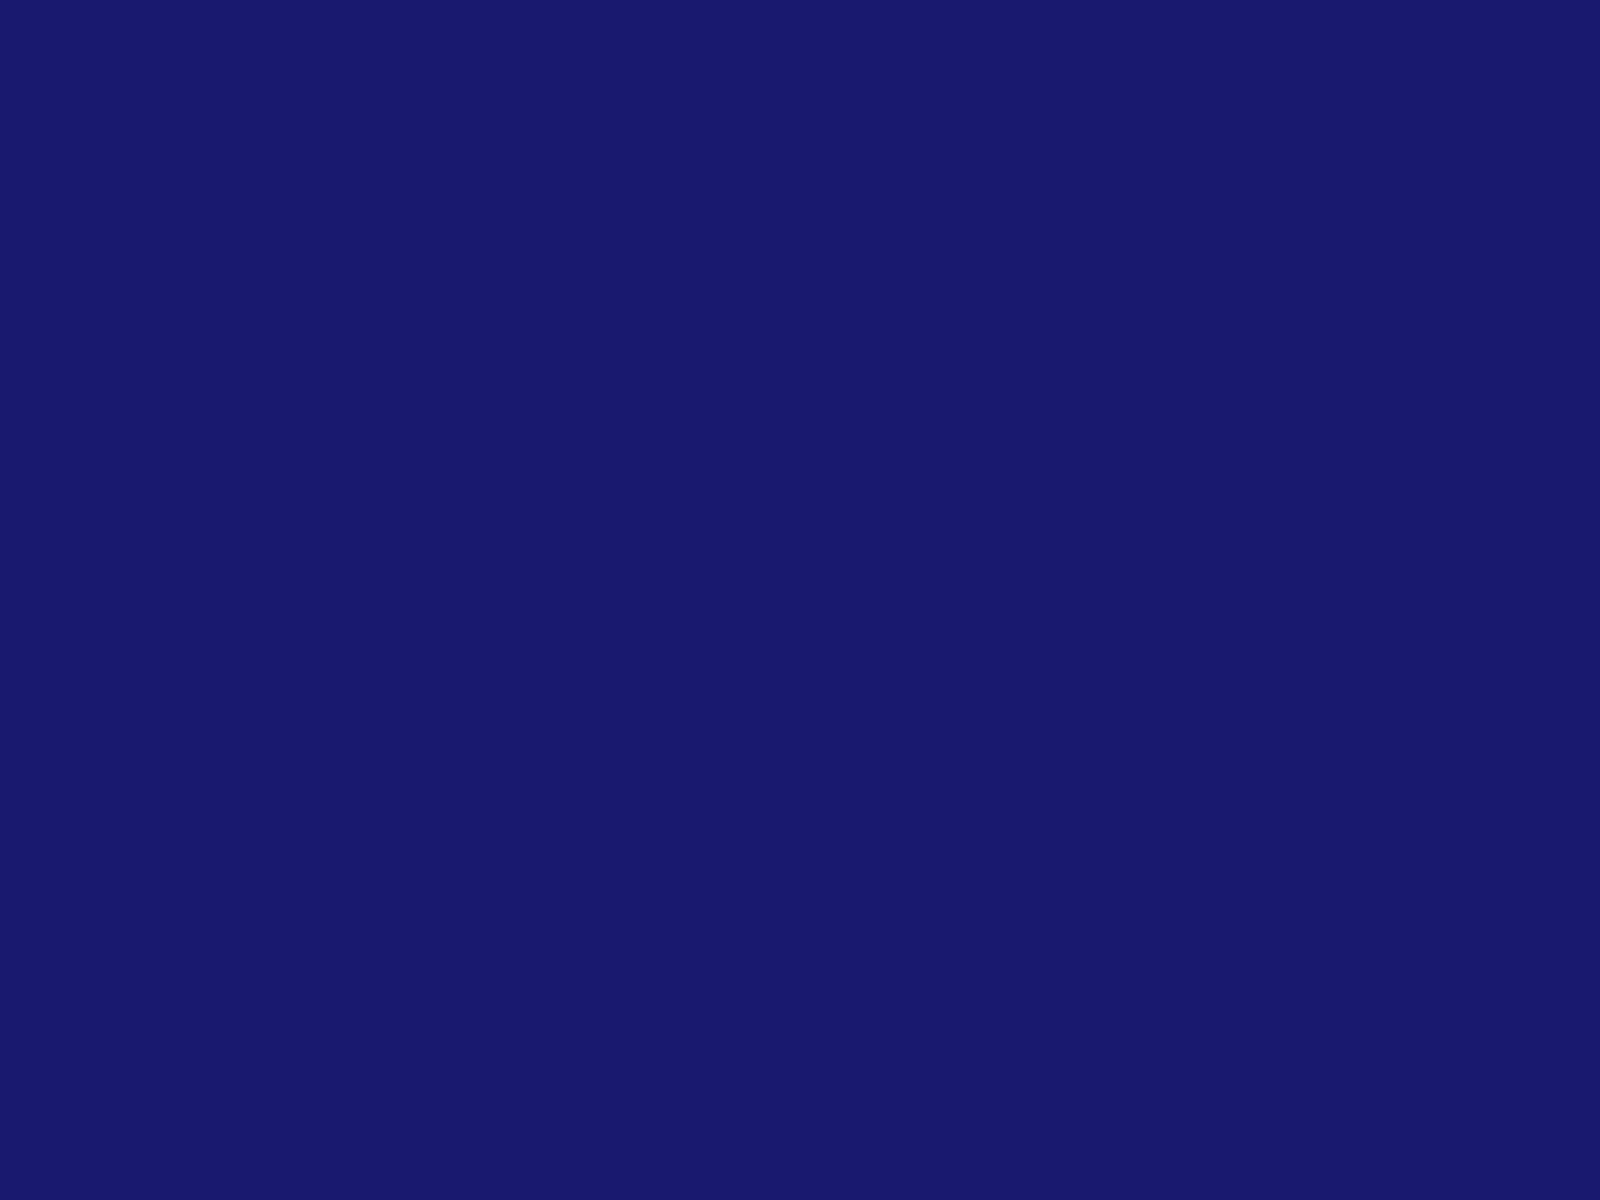 1600x1200 Midnight Blue Solid Color Background